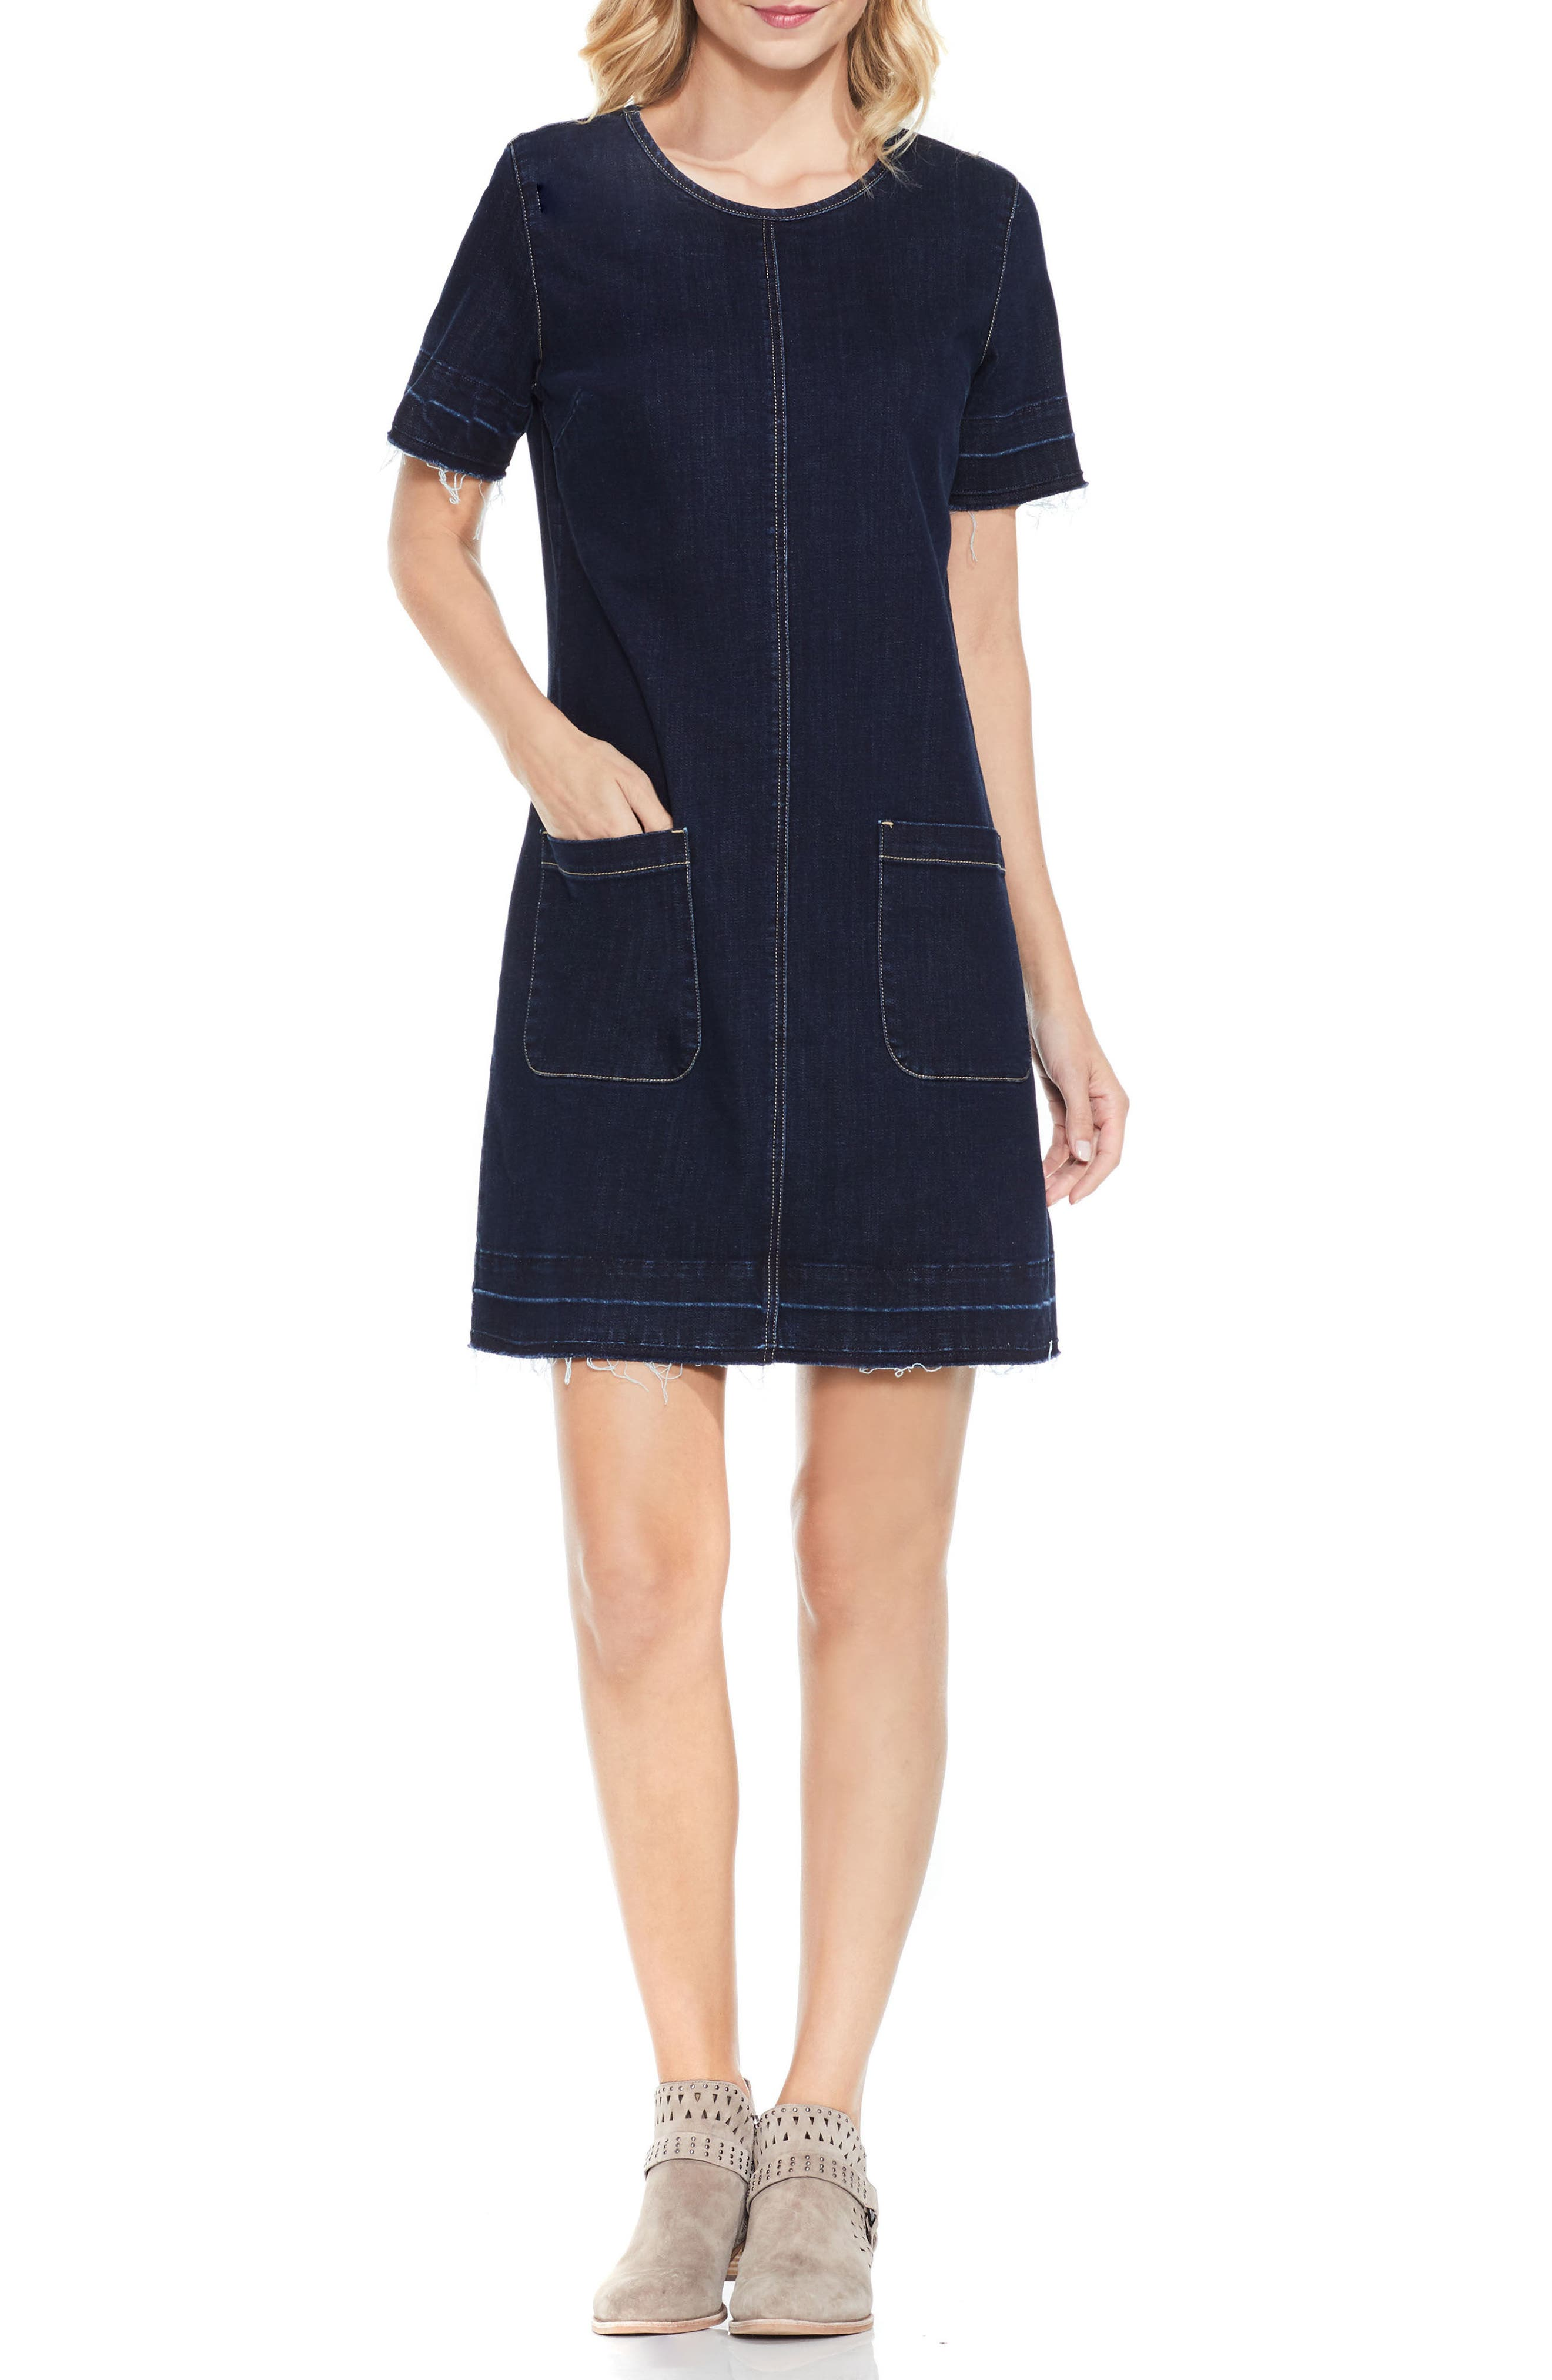 Alternate Image 1 Selected - Vince Camuto Release Hem Denim Dress